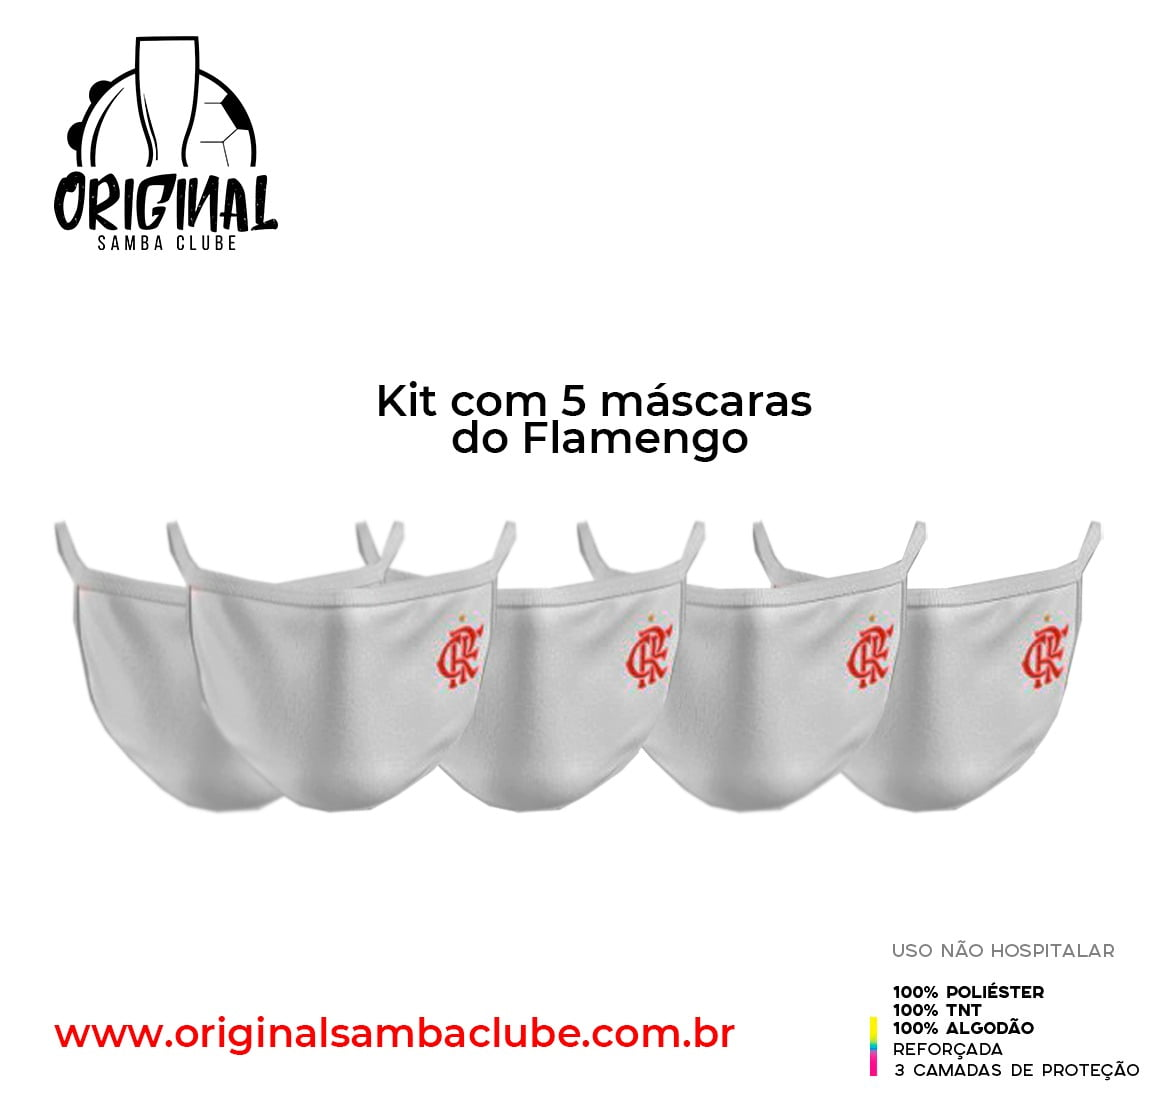 KIT com 5 máscaras do Flamengo brancas